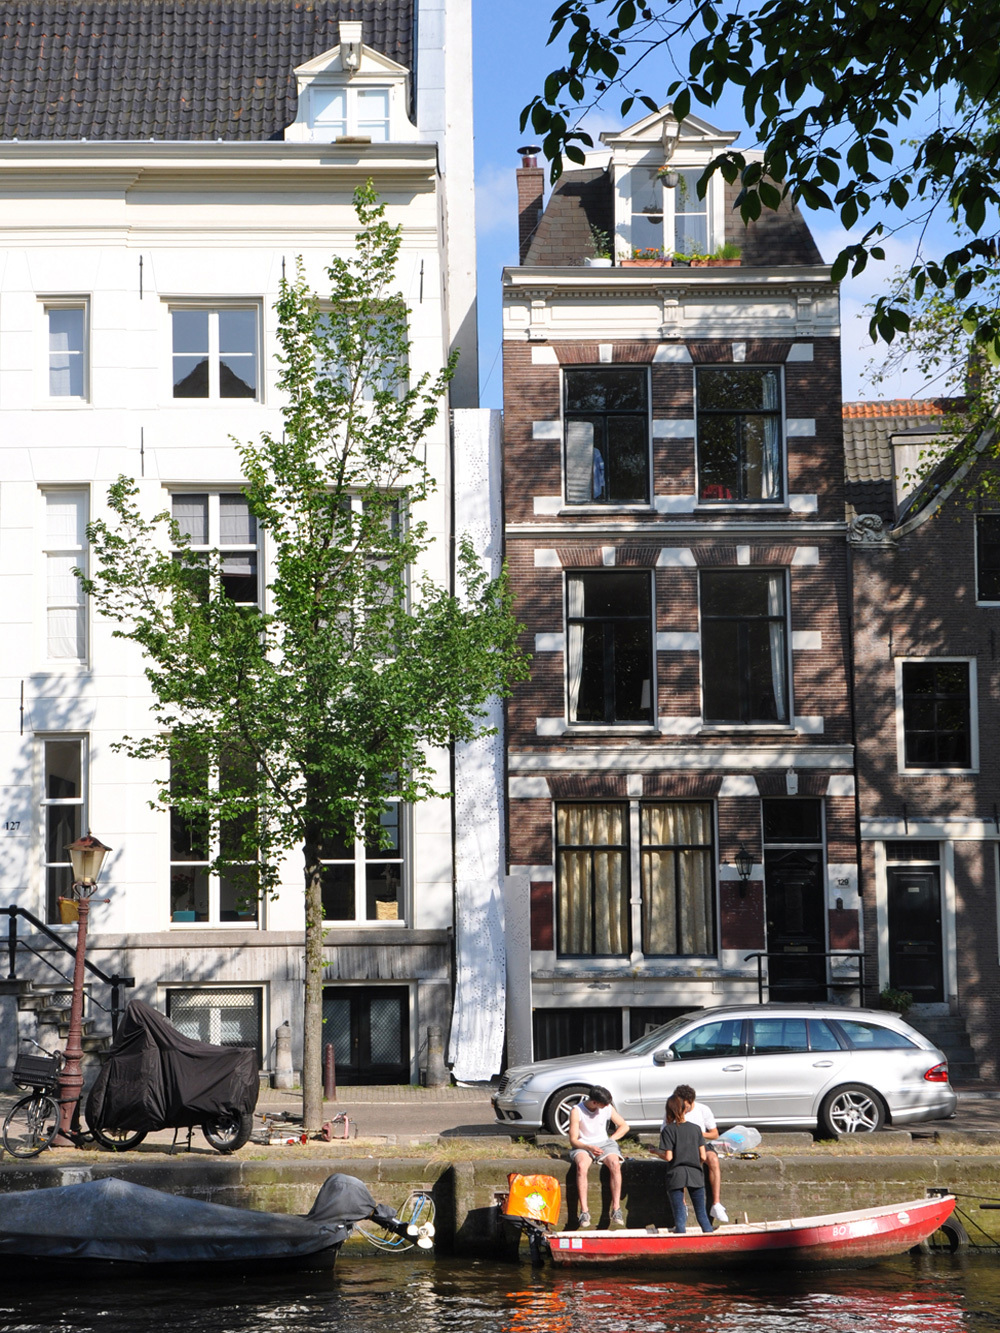 Tussen-ruimte #1, Herengracht 127-129. Photo: Office Jarrik Ouburg